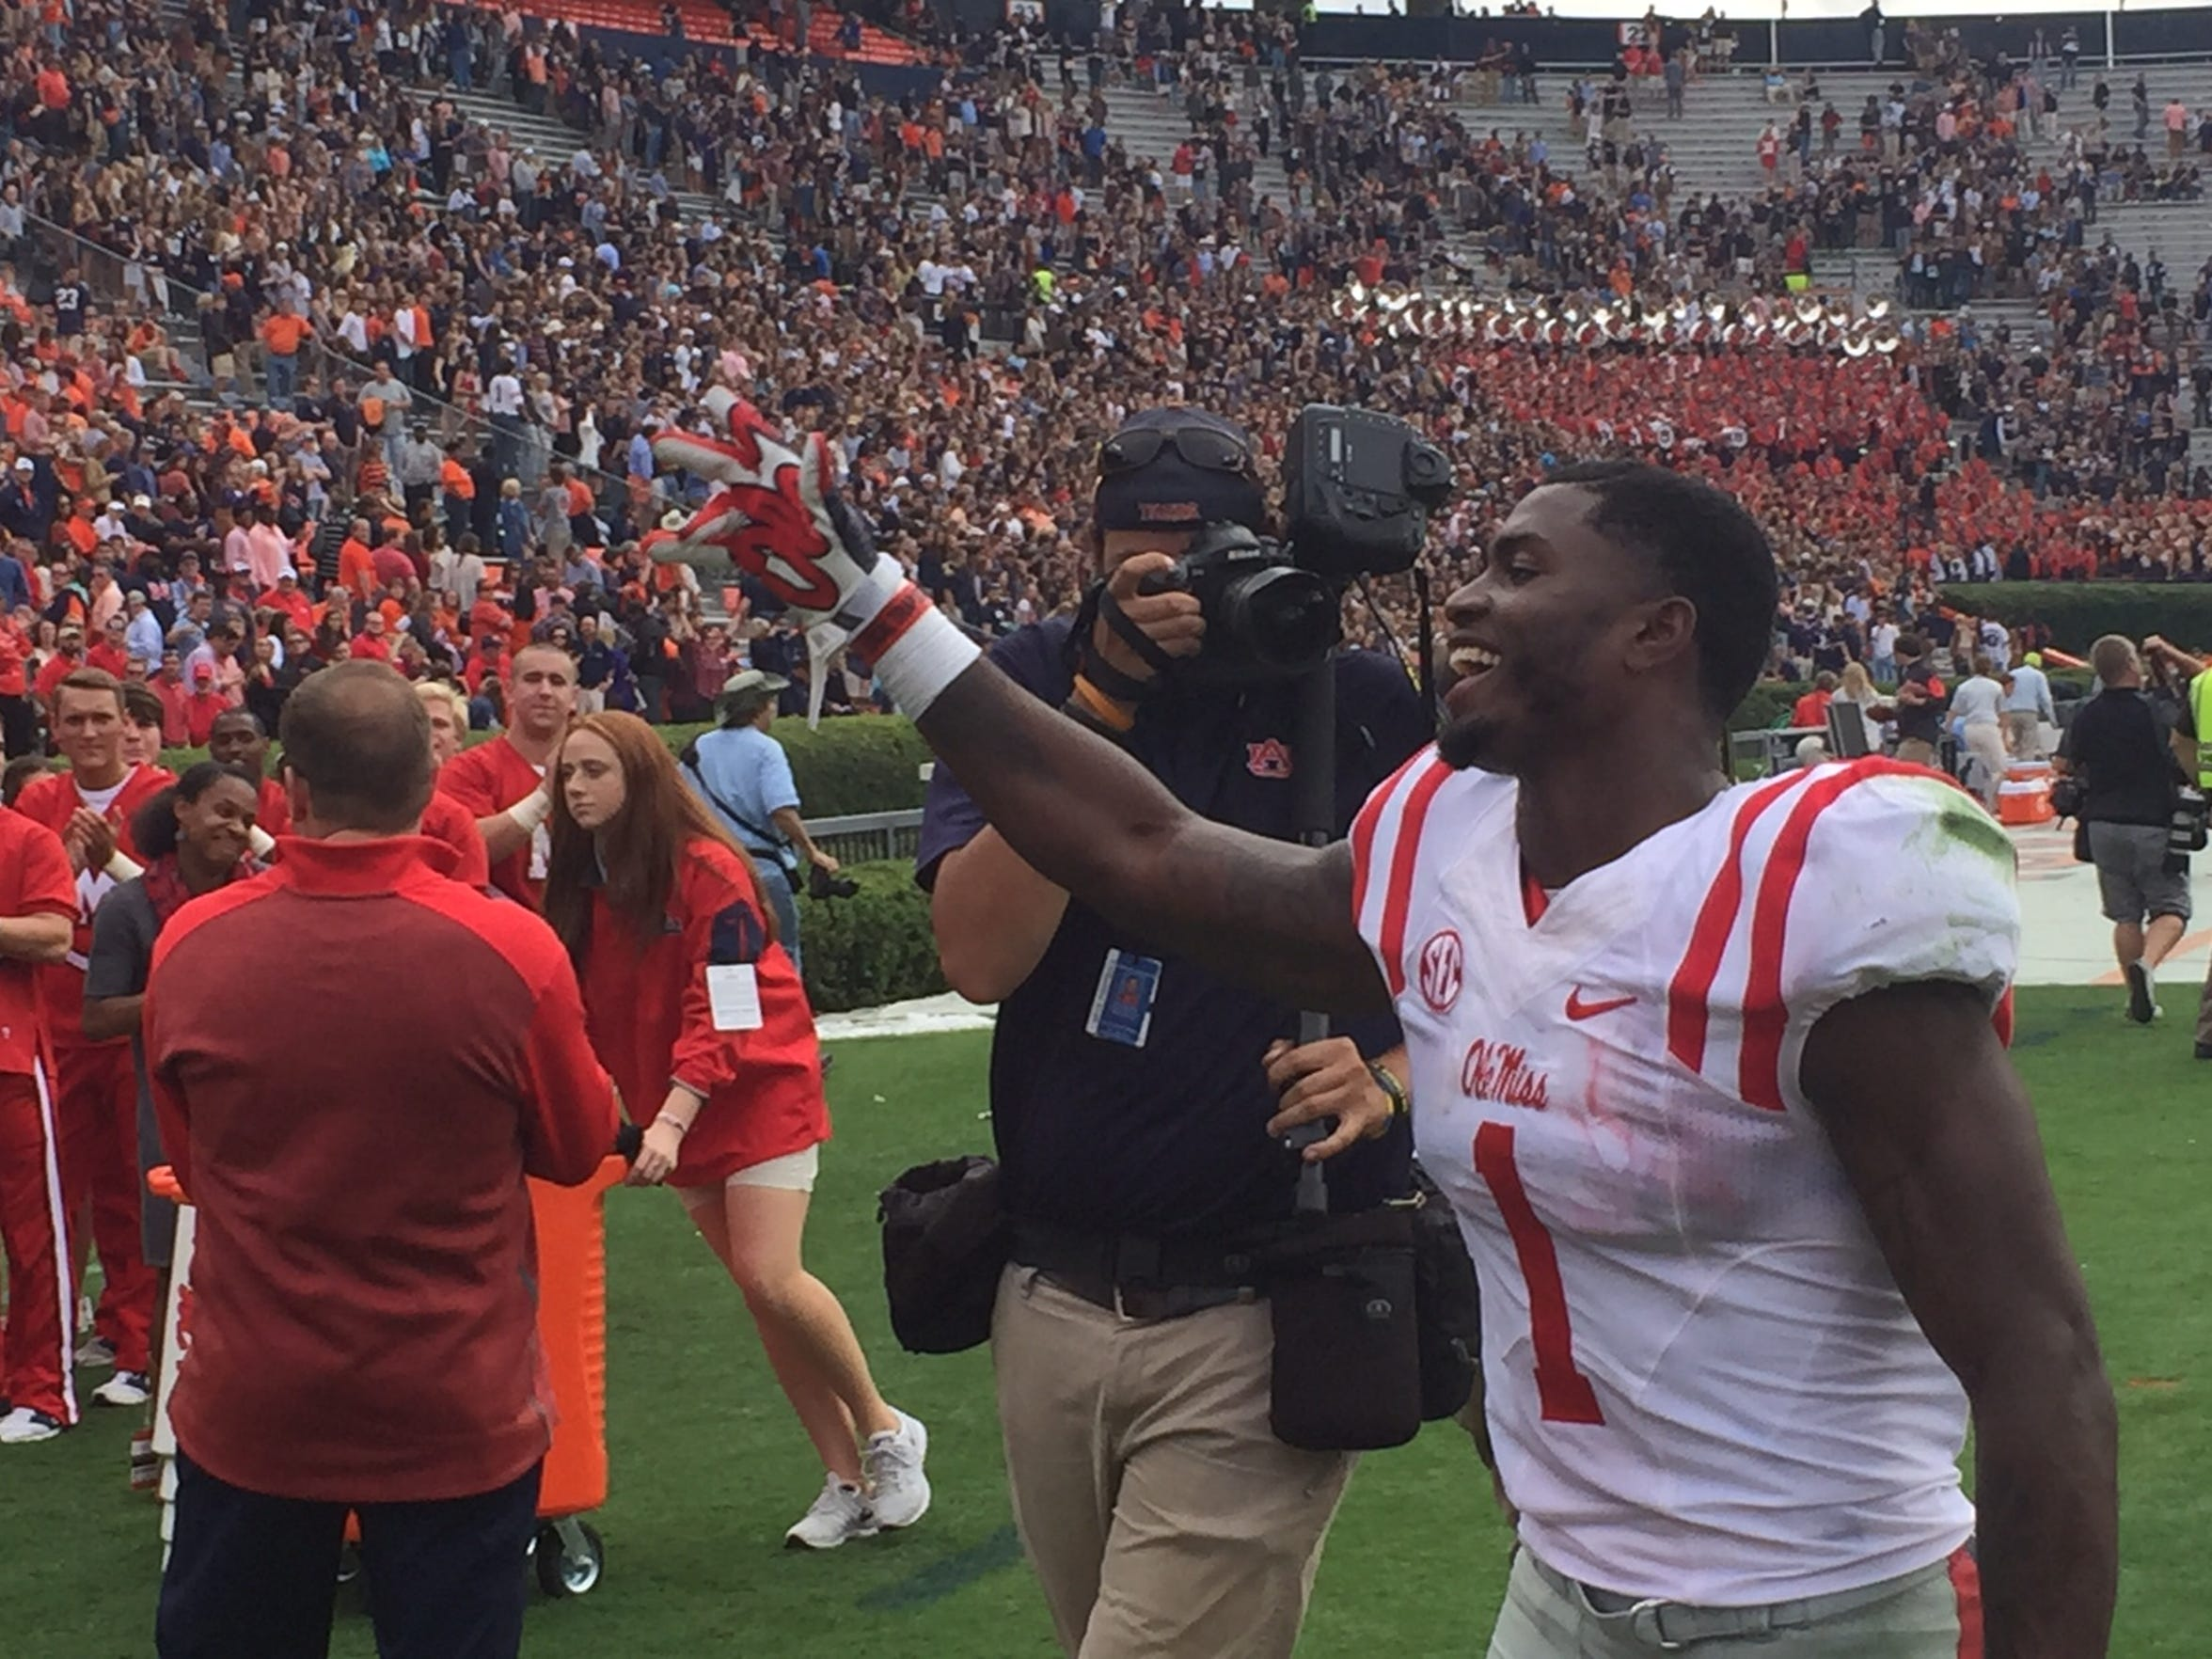 Laquon Treadwell had his fourth-straight 100-yard receiving game Saturday, leading Ole Miss to a win against Auburn.